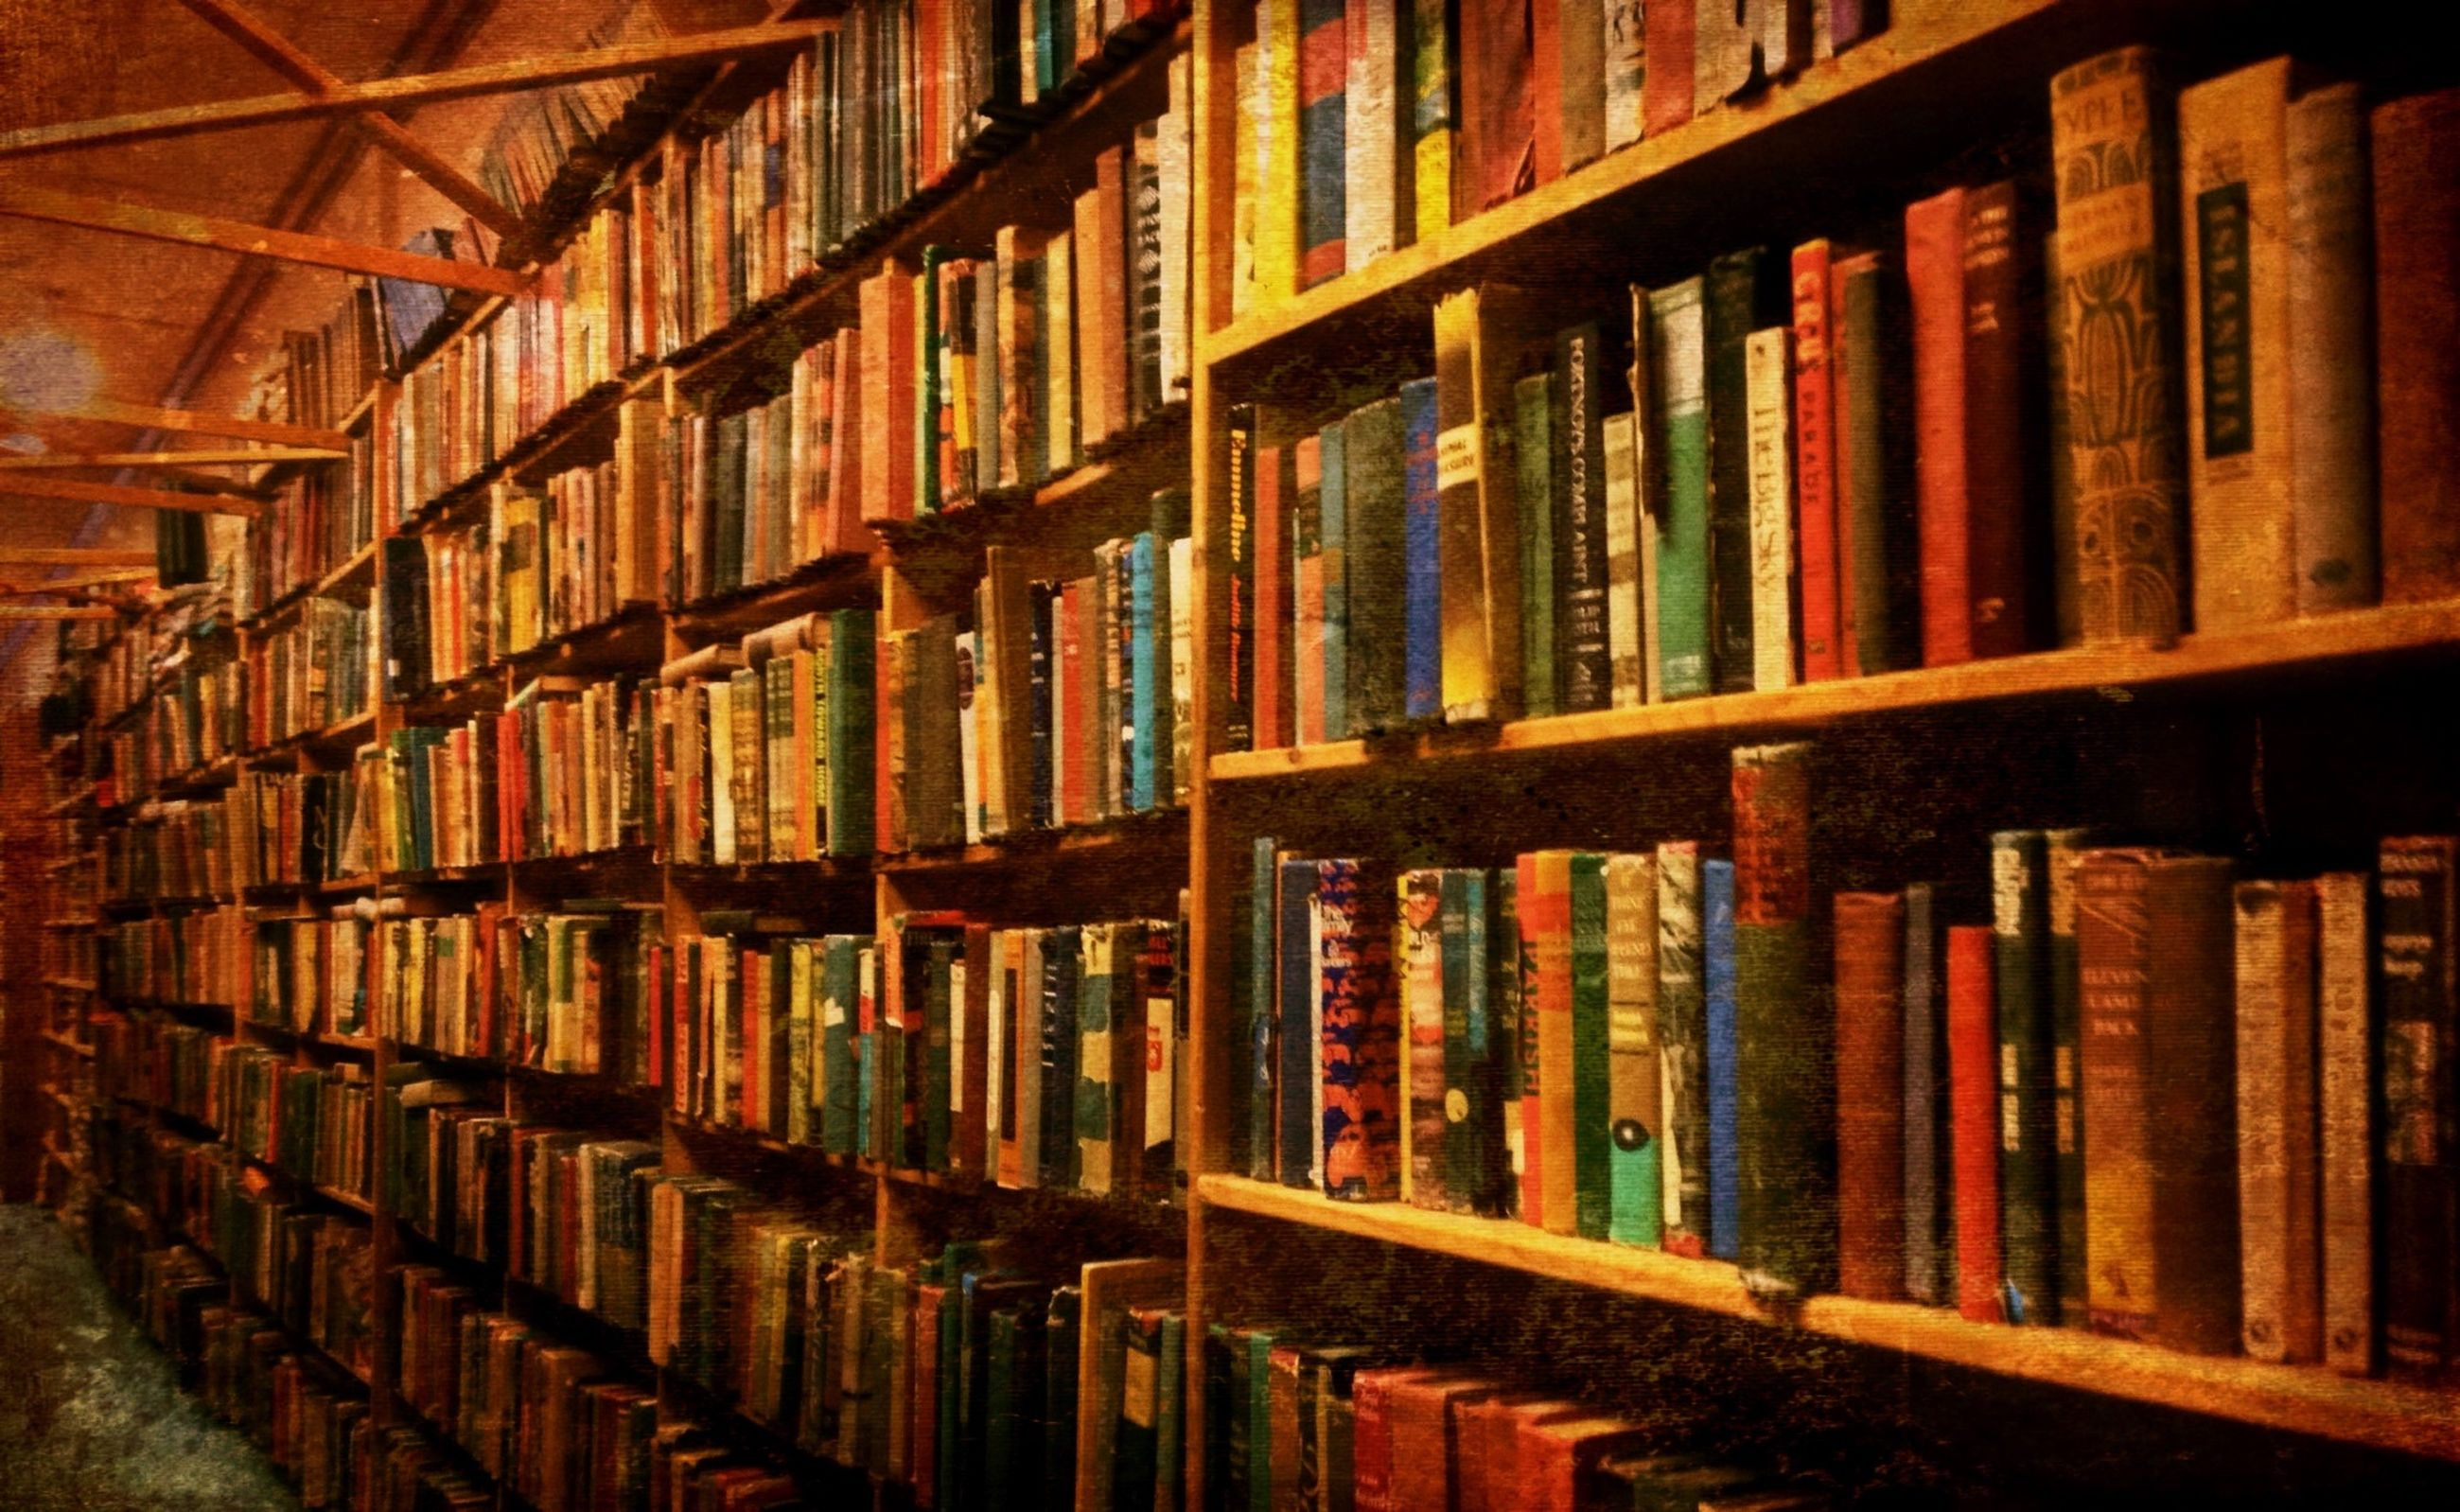 indoors, in a row, order, large group of objects, shelf, arrangement, variation, abundance, bookshelf, choice, multi colored, full frame, education, repetition, collection, book, library, backgrounds, window, stack